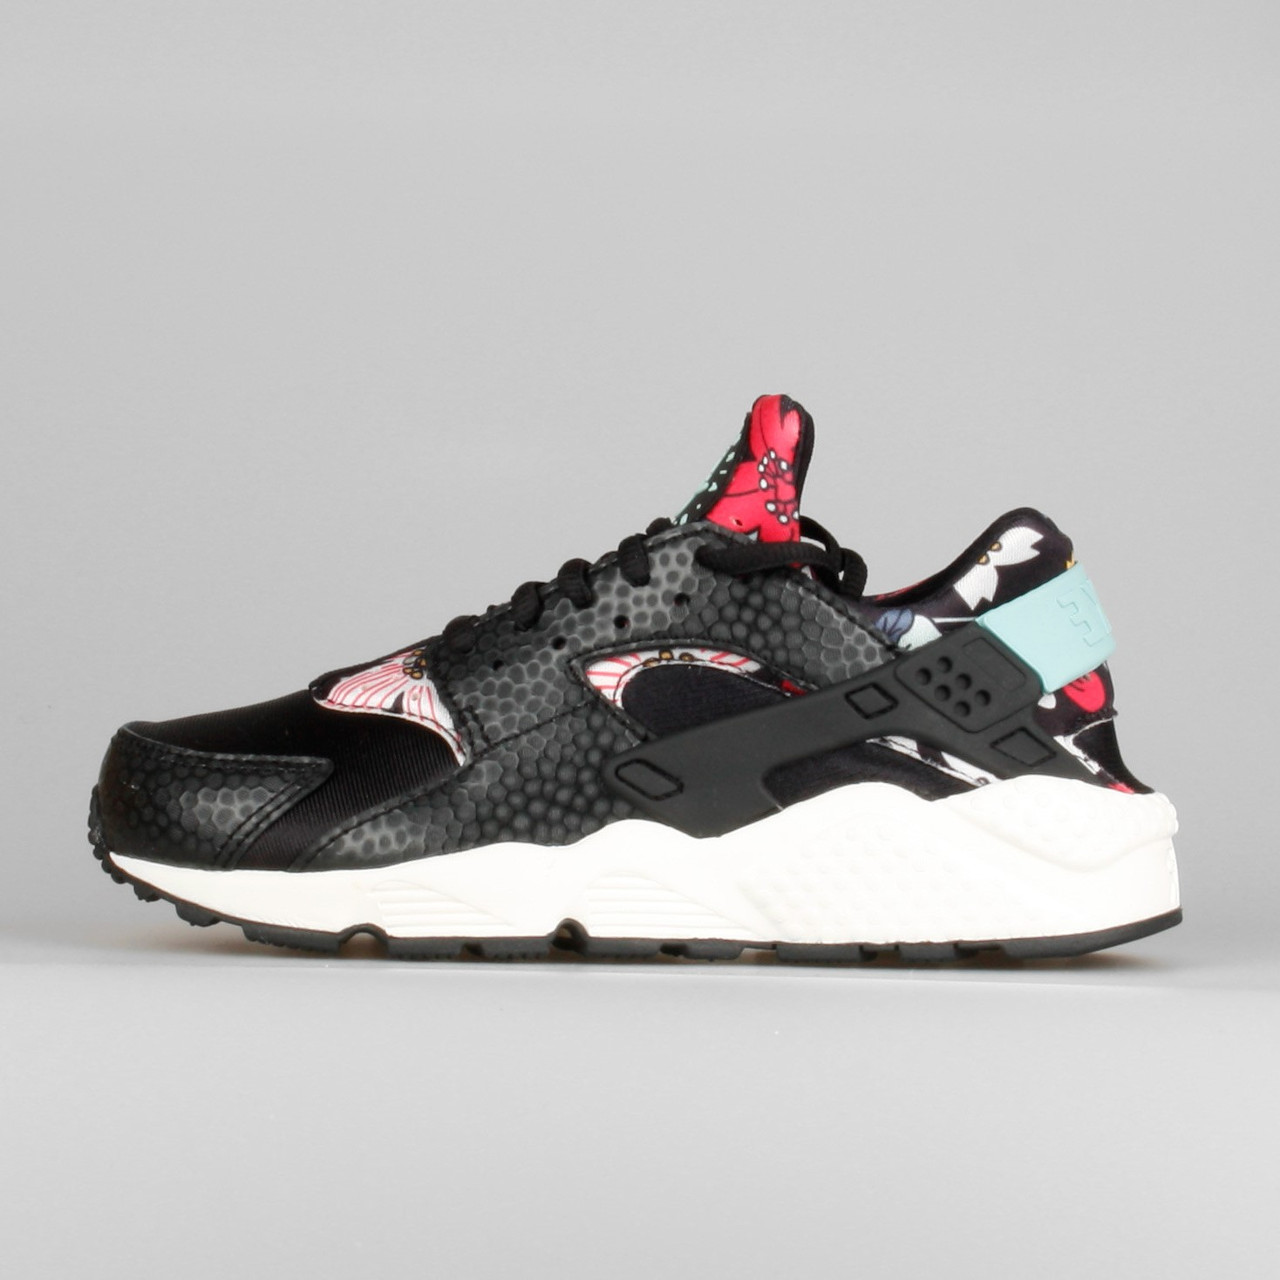 Кроссовки женские Nike Air Huarache Run Aloha Black, найк хуарачи